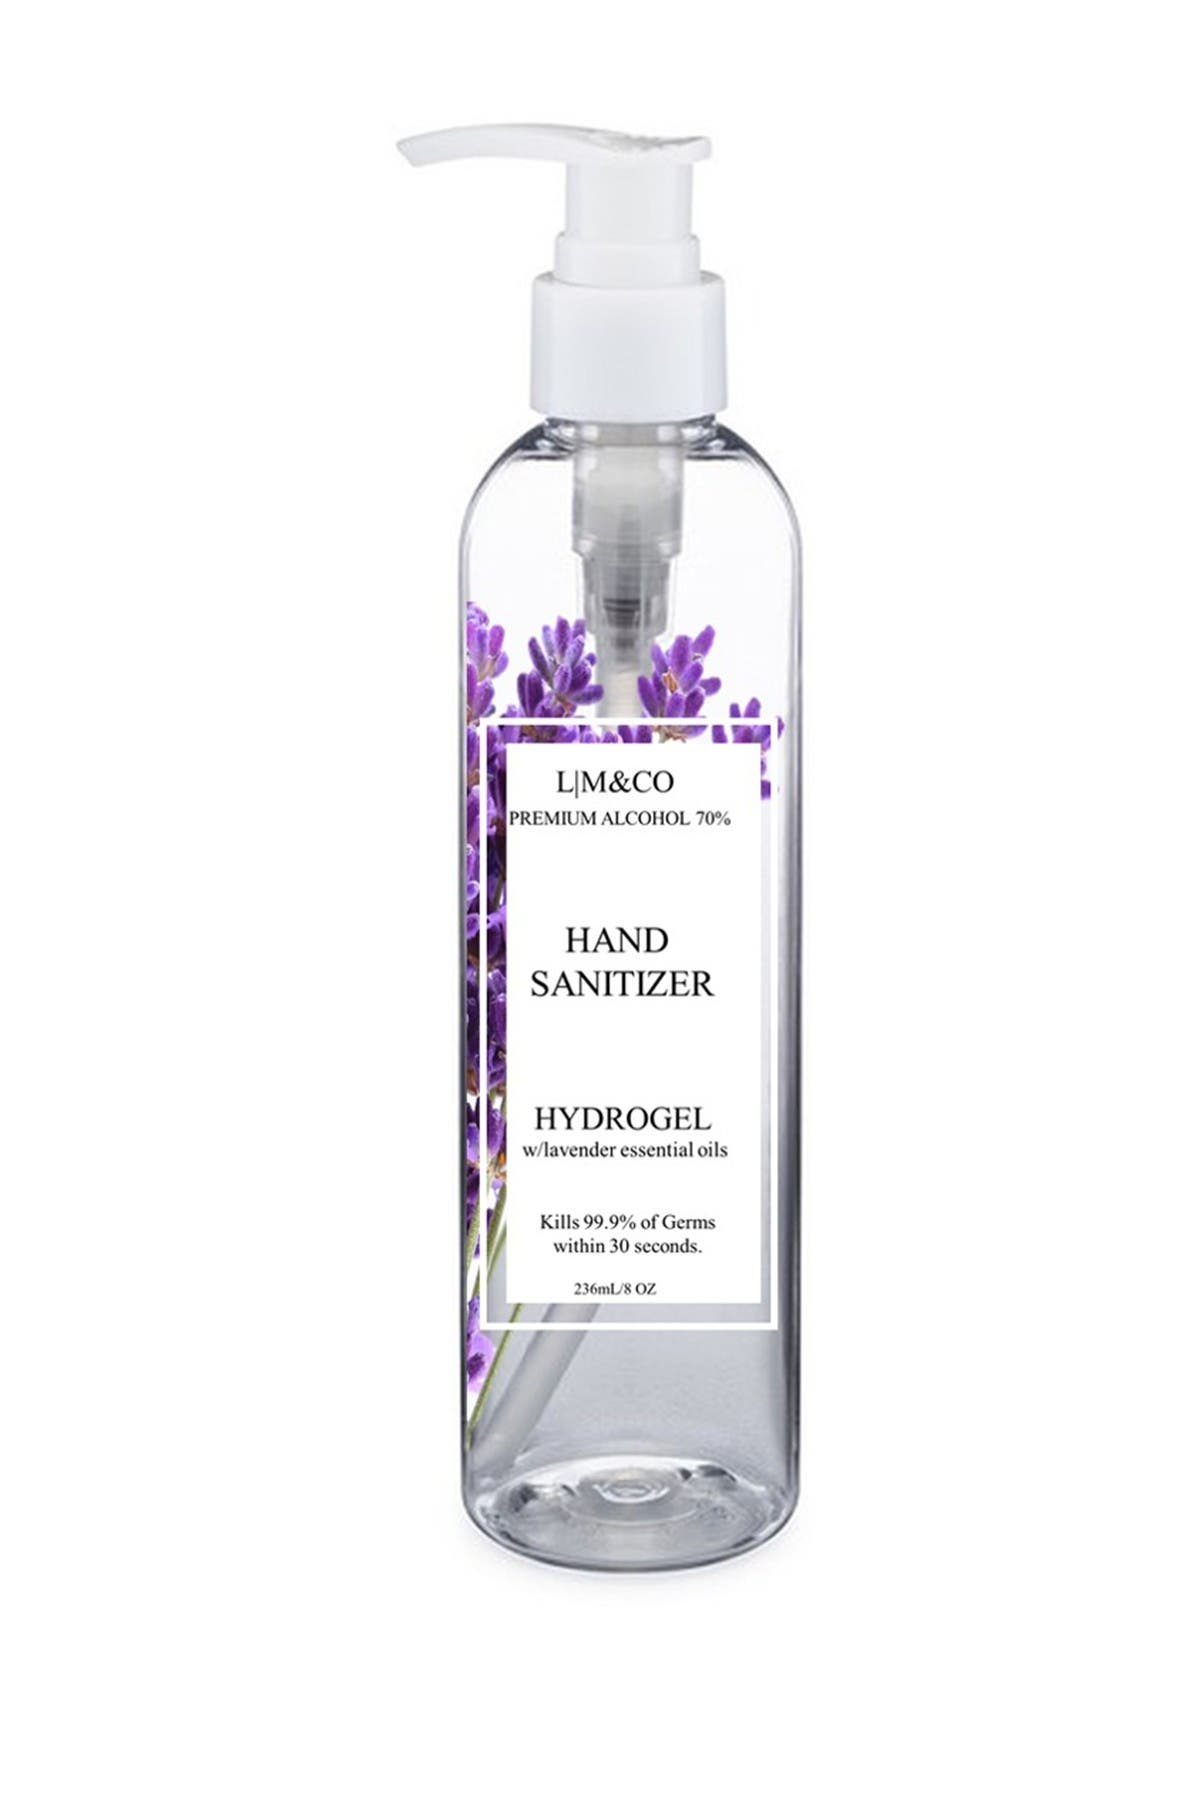 Image of LM AND CO Hydrogel Premium Hand Sanitizer 70%